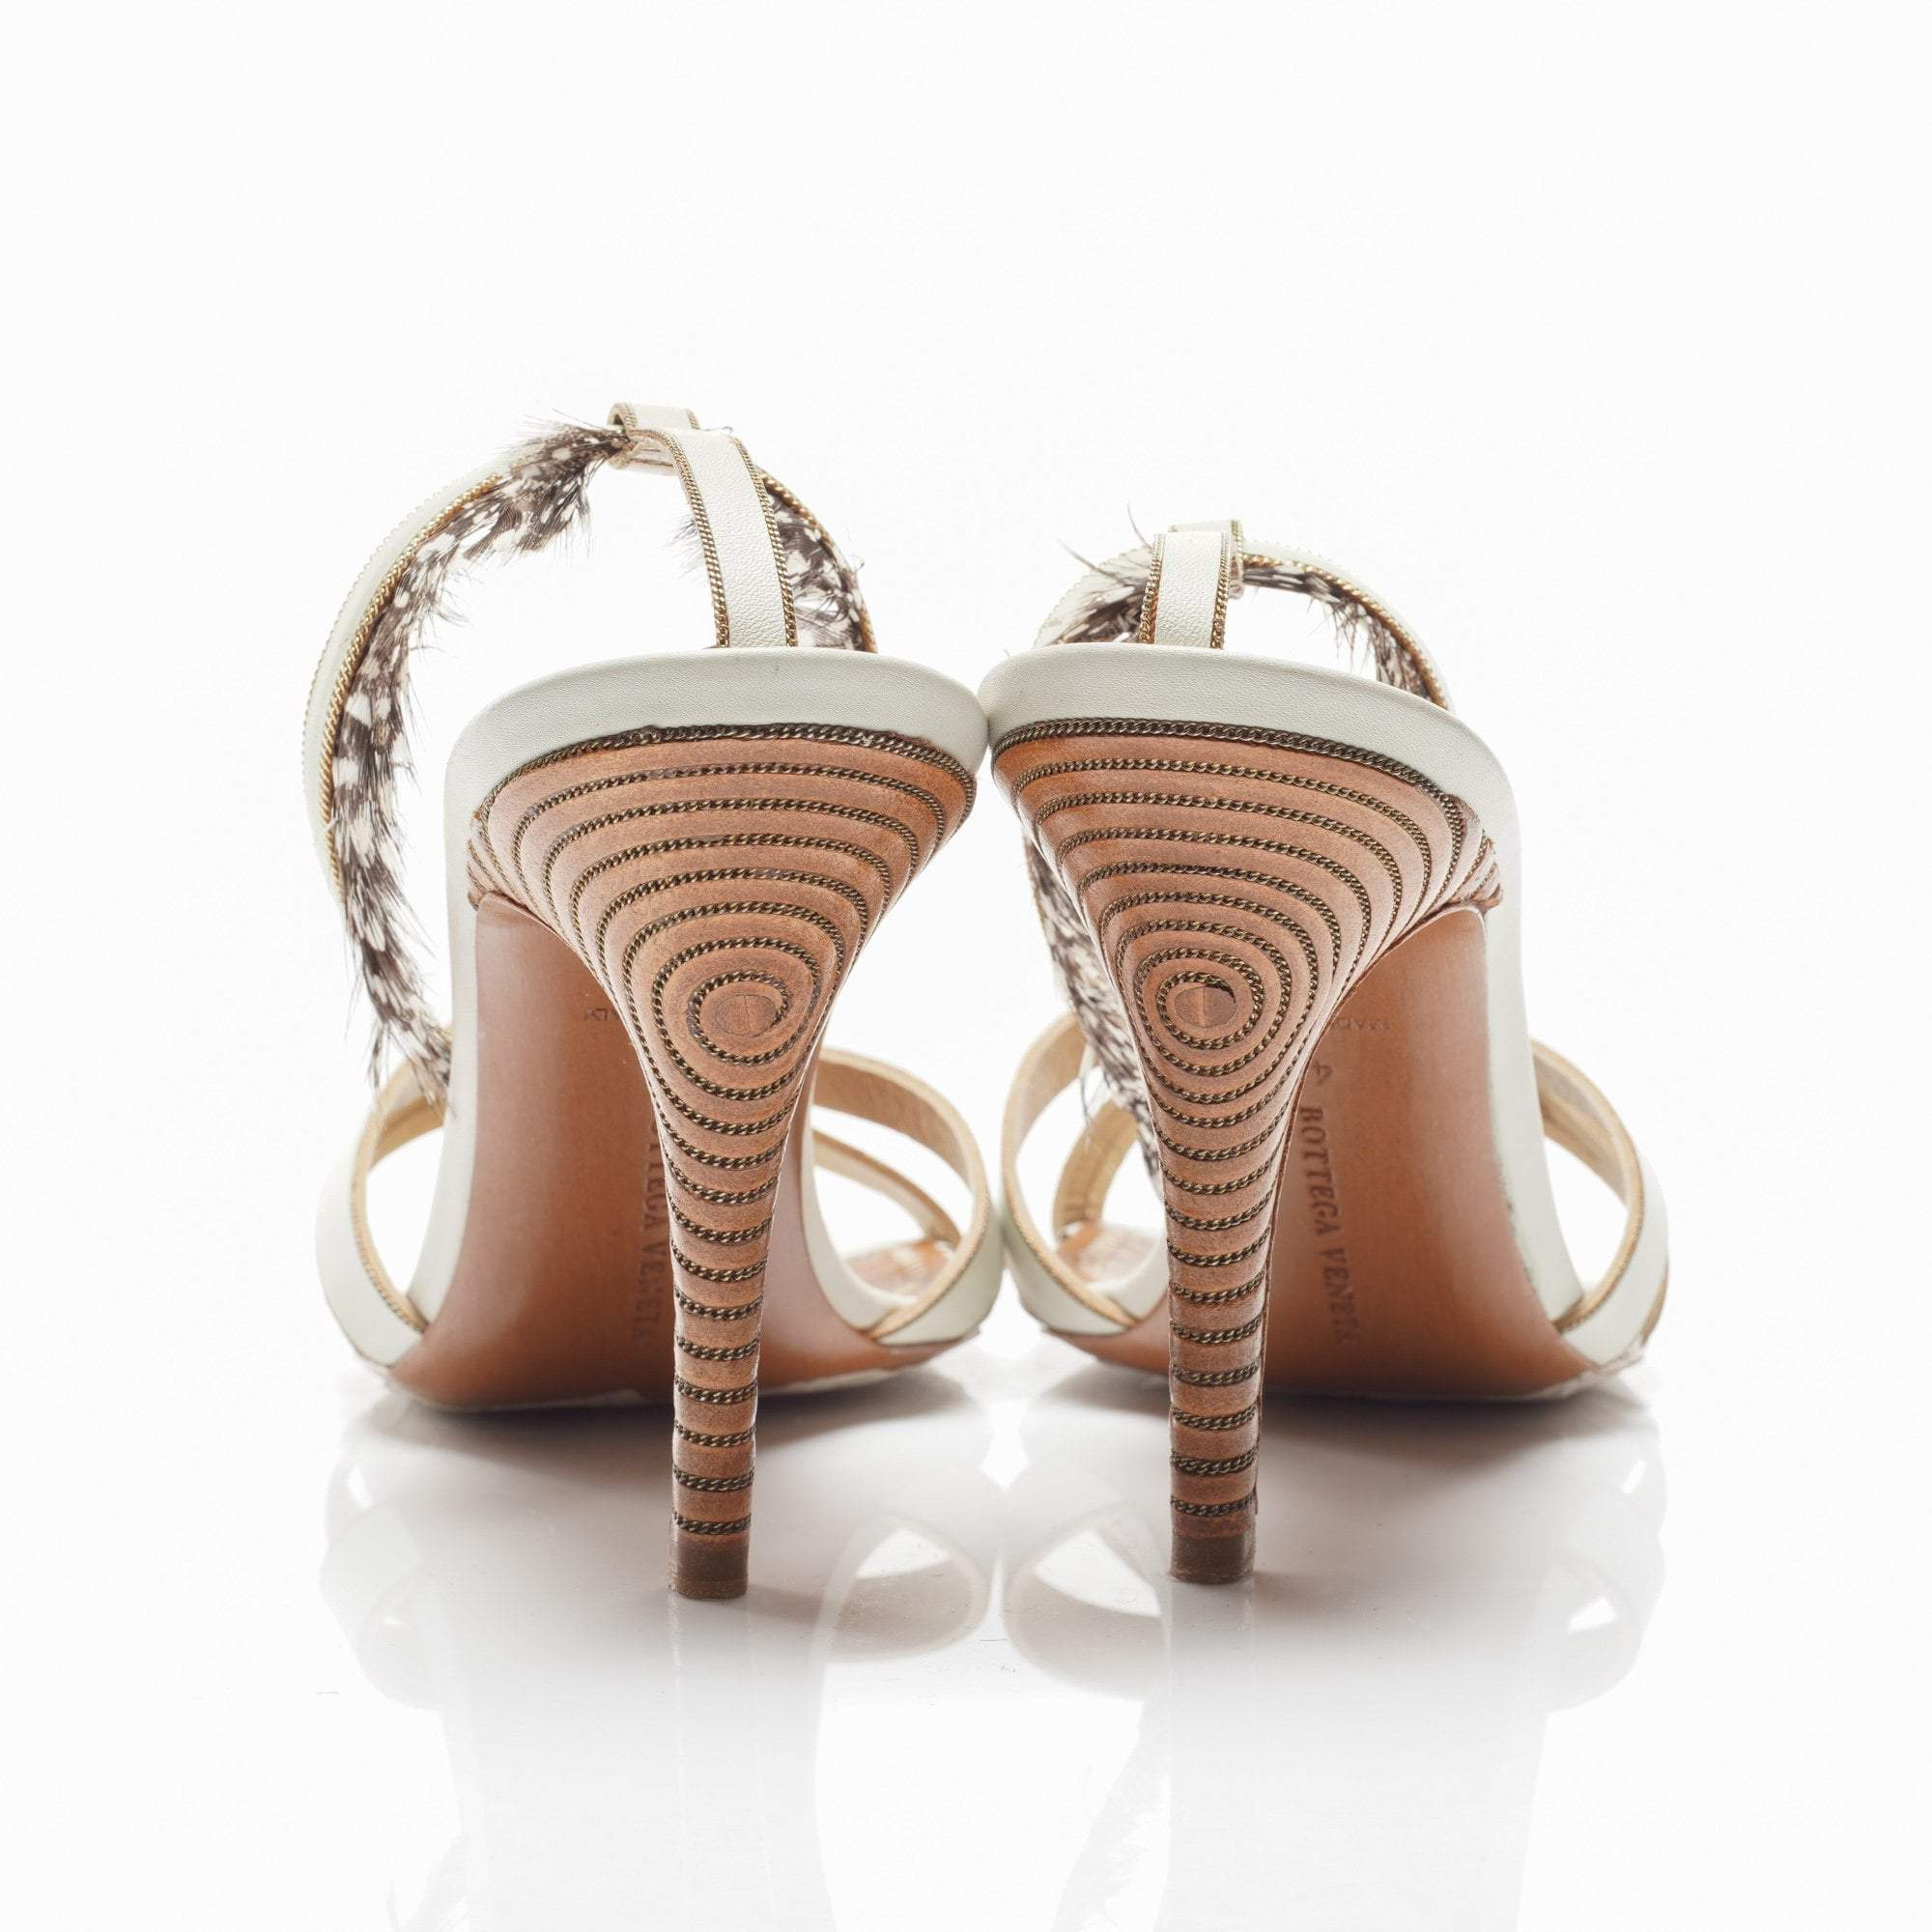 Bottega Veneta Mint Green Feathery Sandal Heels